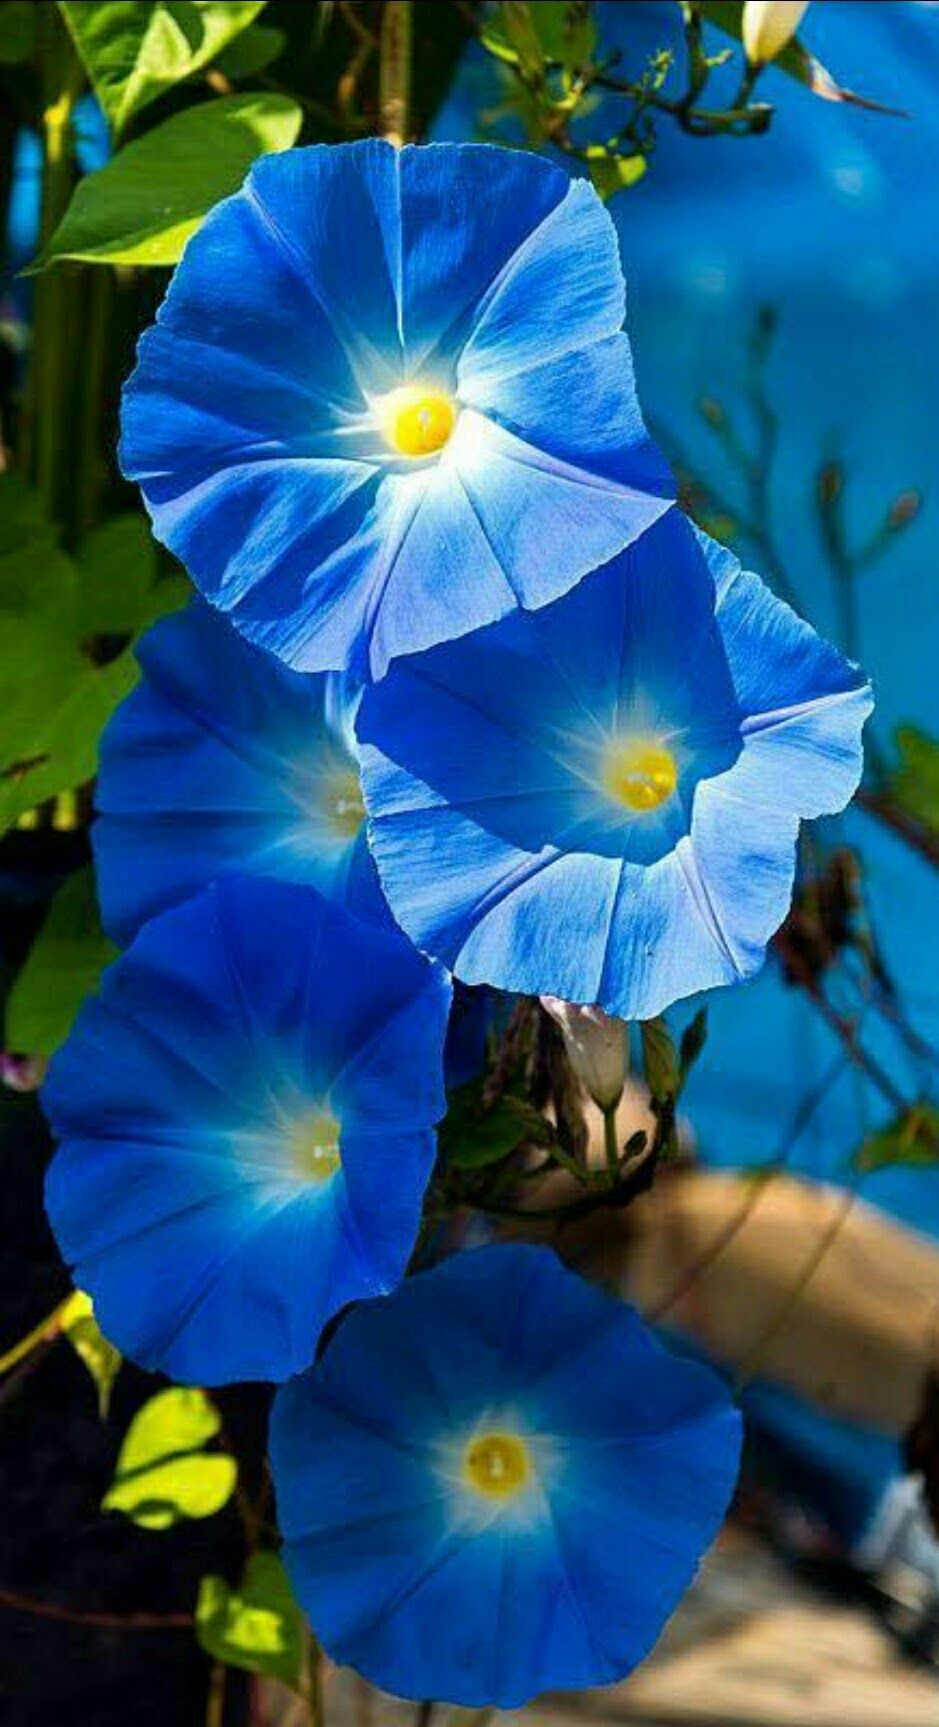 Pin By Rick Price On Flowers And Gardens Morning Glory Flowers Climbing Flowers Blue Morning Glory